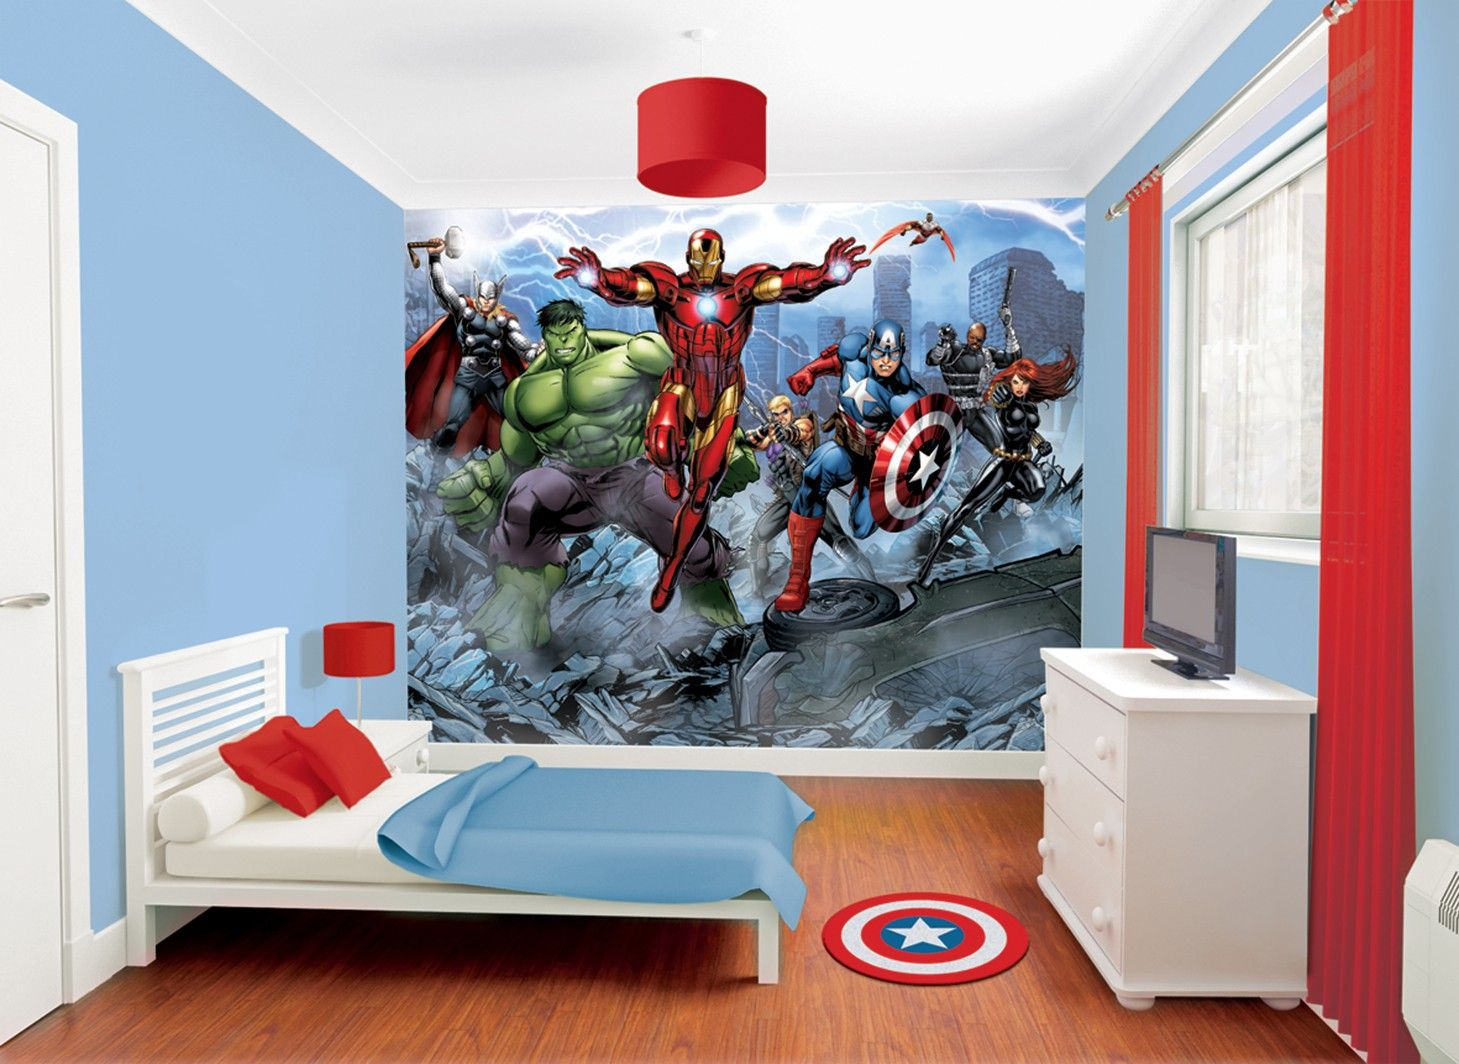 Murals for boys bedrooms - Marvel Avengers Wallpaper Murals The Boys Need This For Their New Room